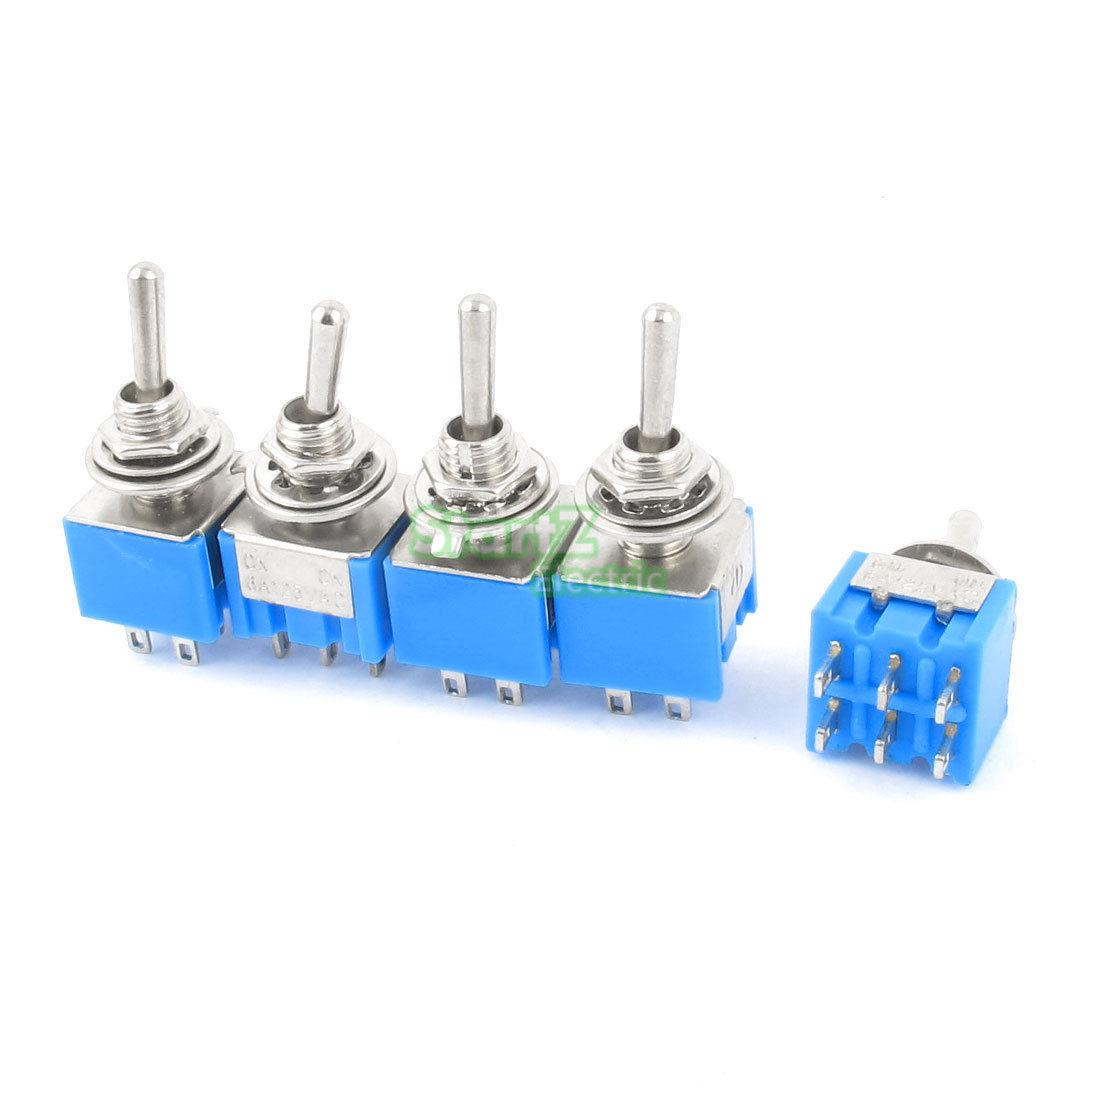 6 wire toggle switch toyota wiring diagram color codes 5pcs dpdt on 2 positions pin latching miniature